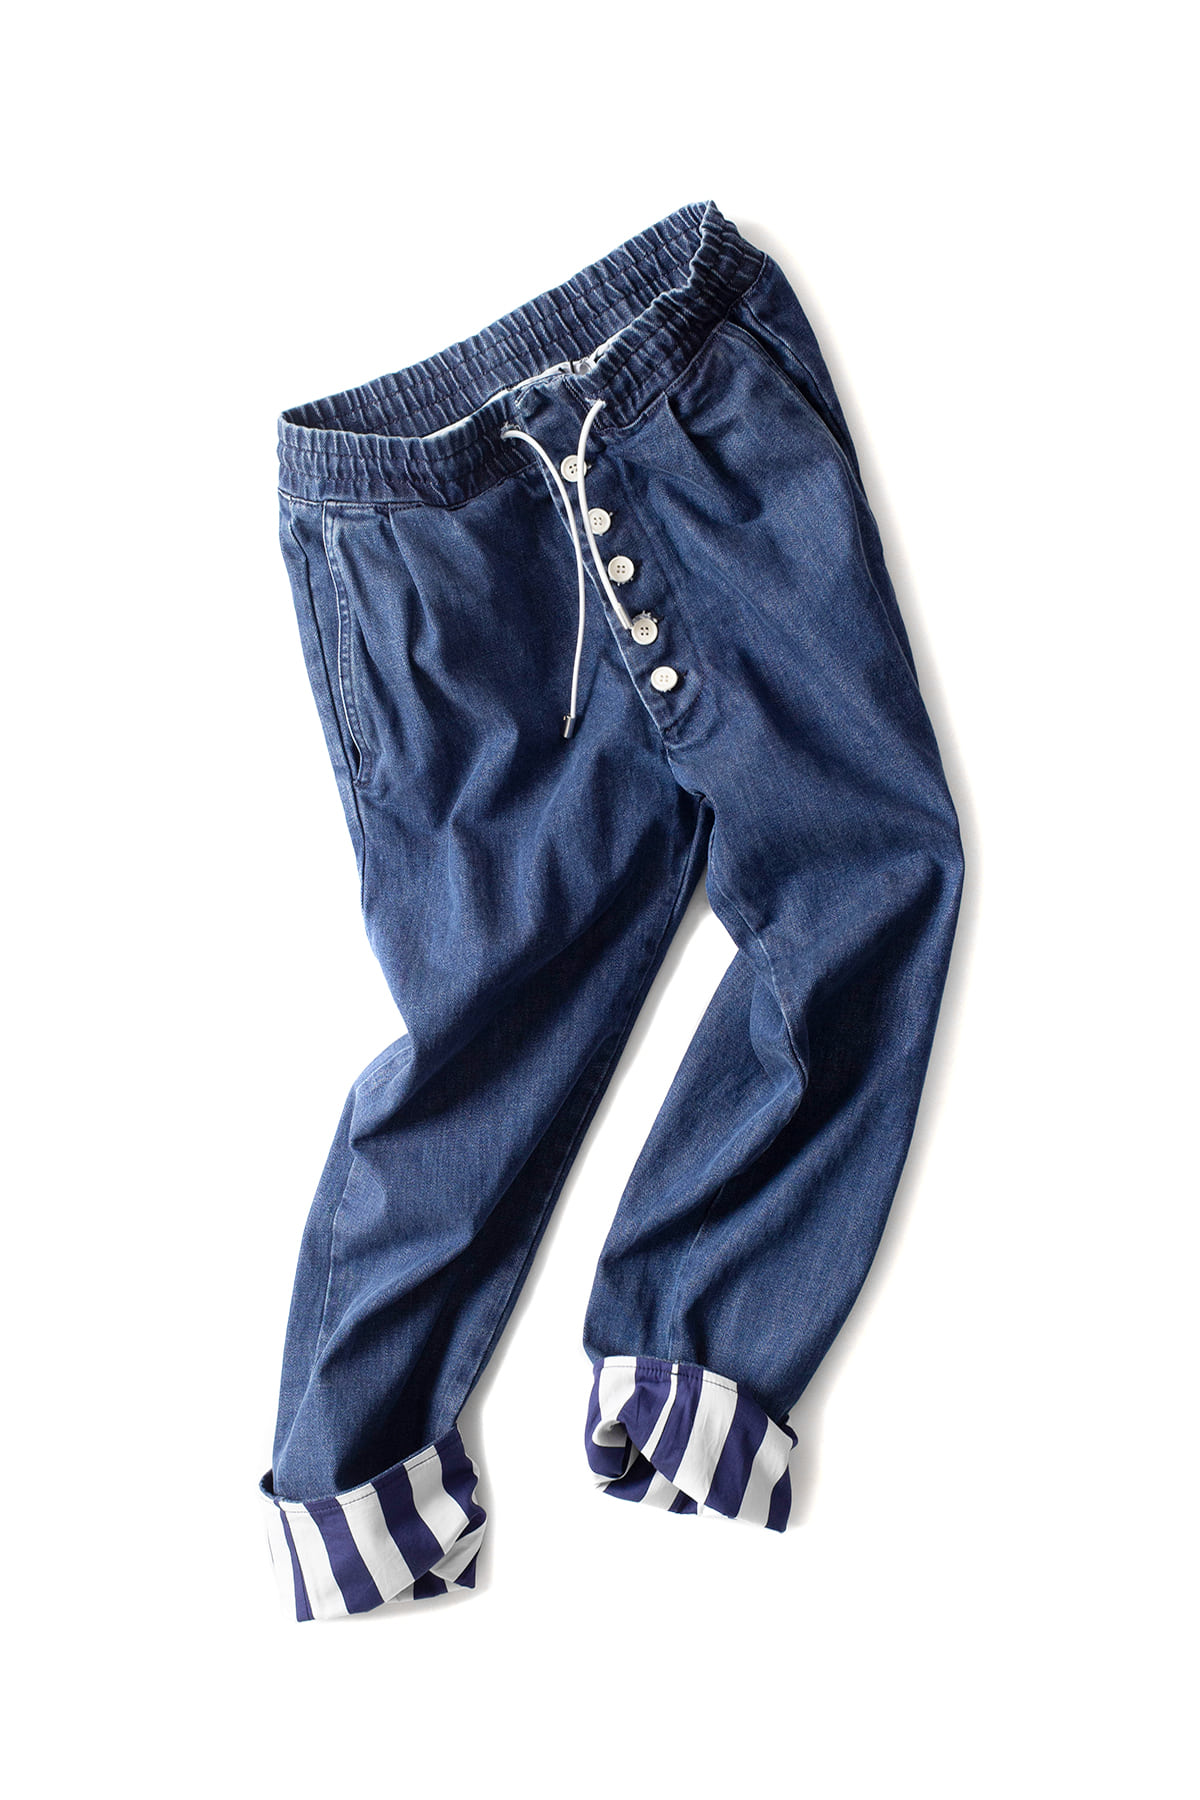 SUNNEI : Washed Denim Elastic Pants (Denim)